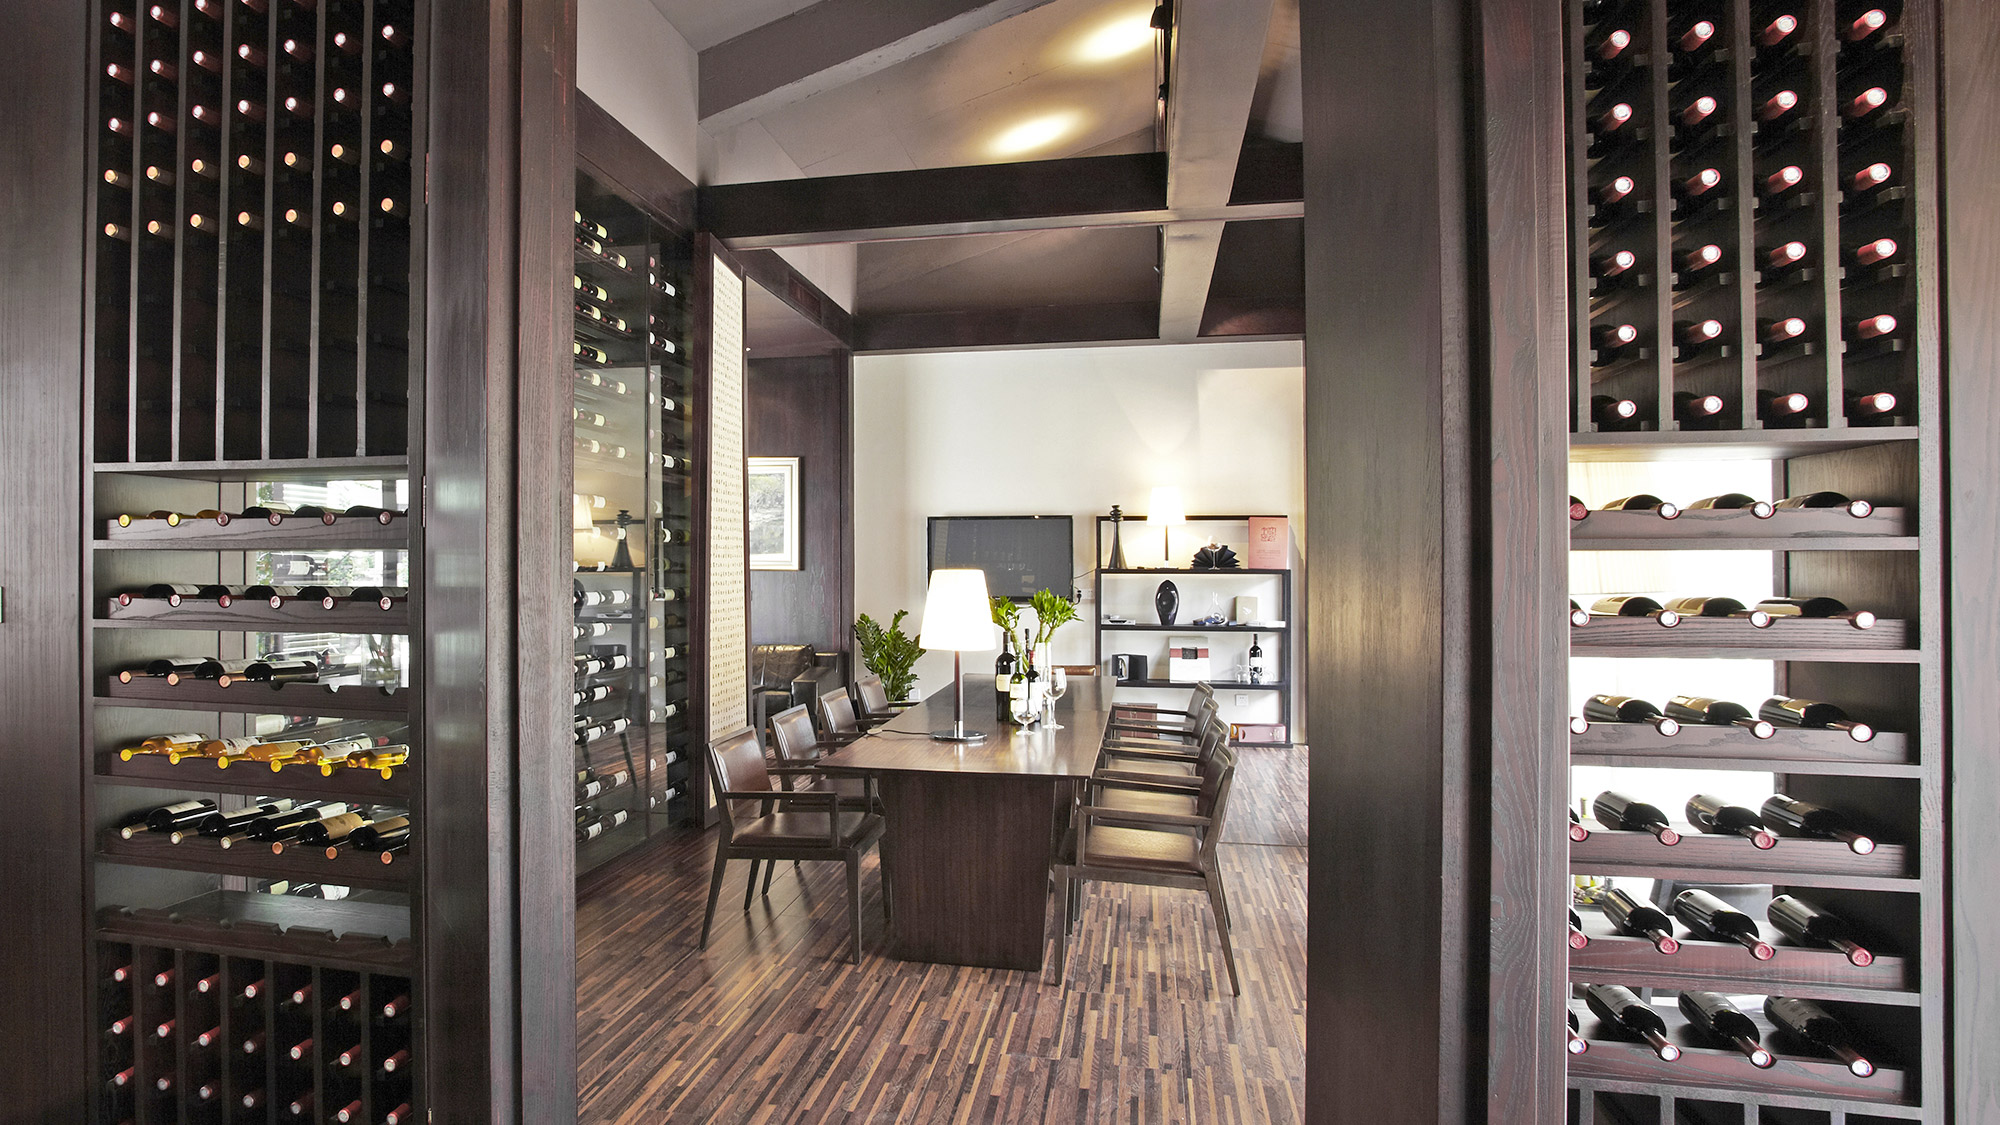 Wine cellar as a function of the dining room.